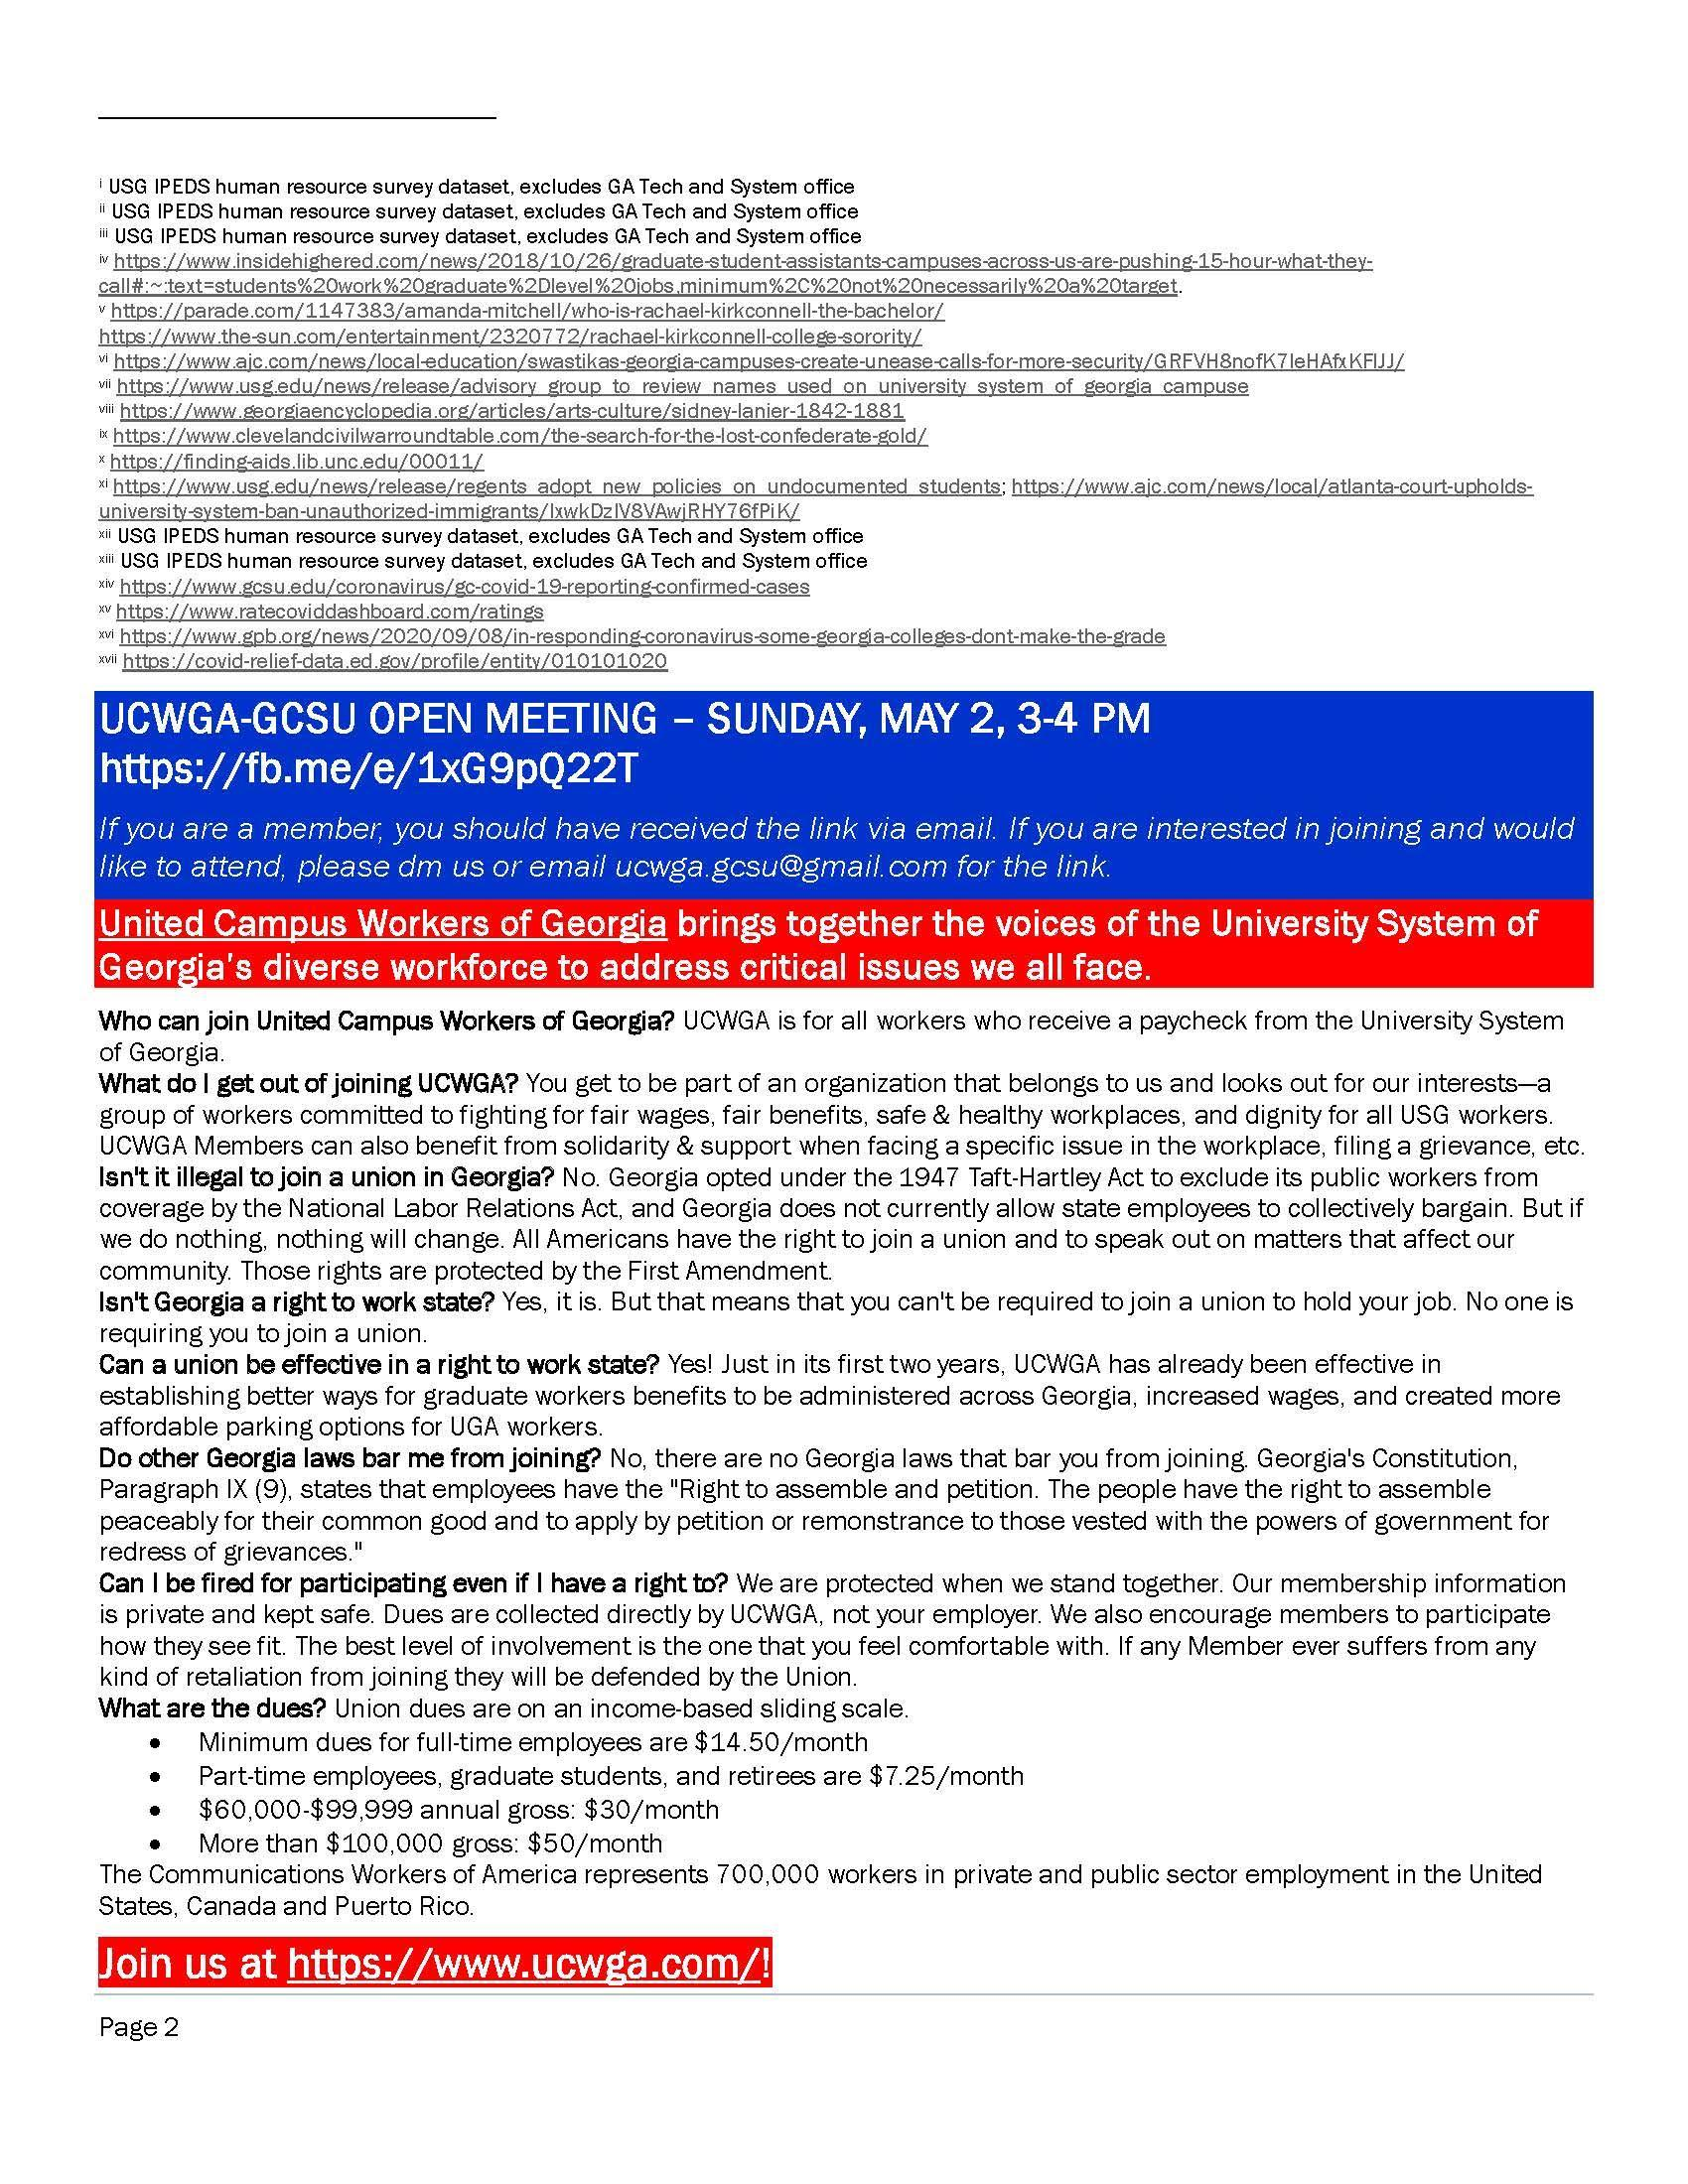 Page of citations for the report card and frequently asked questions about the right to join a union in Georgia.